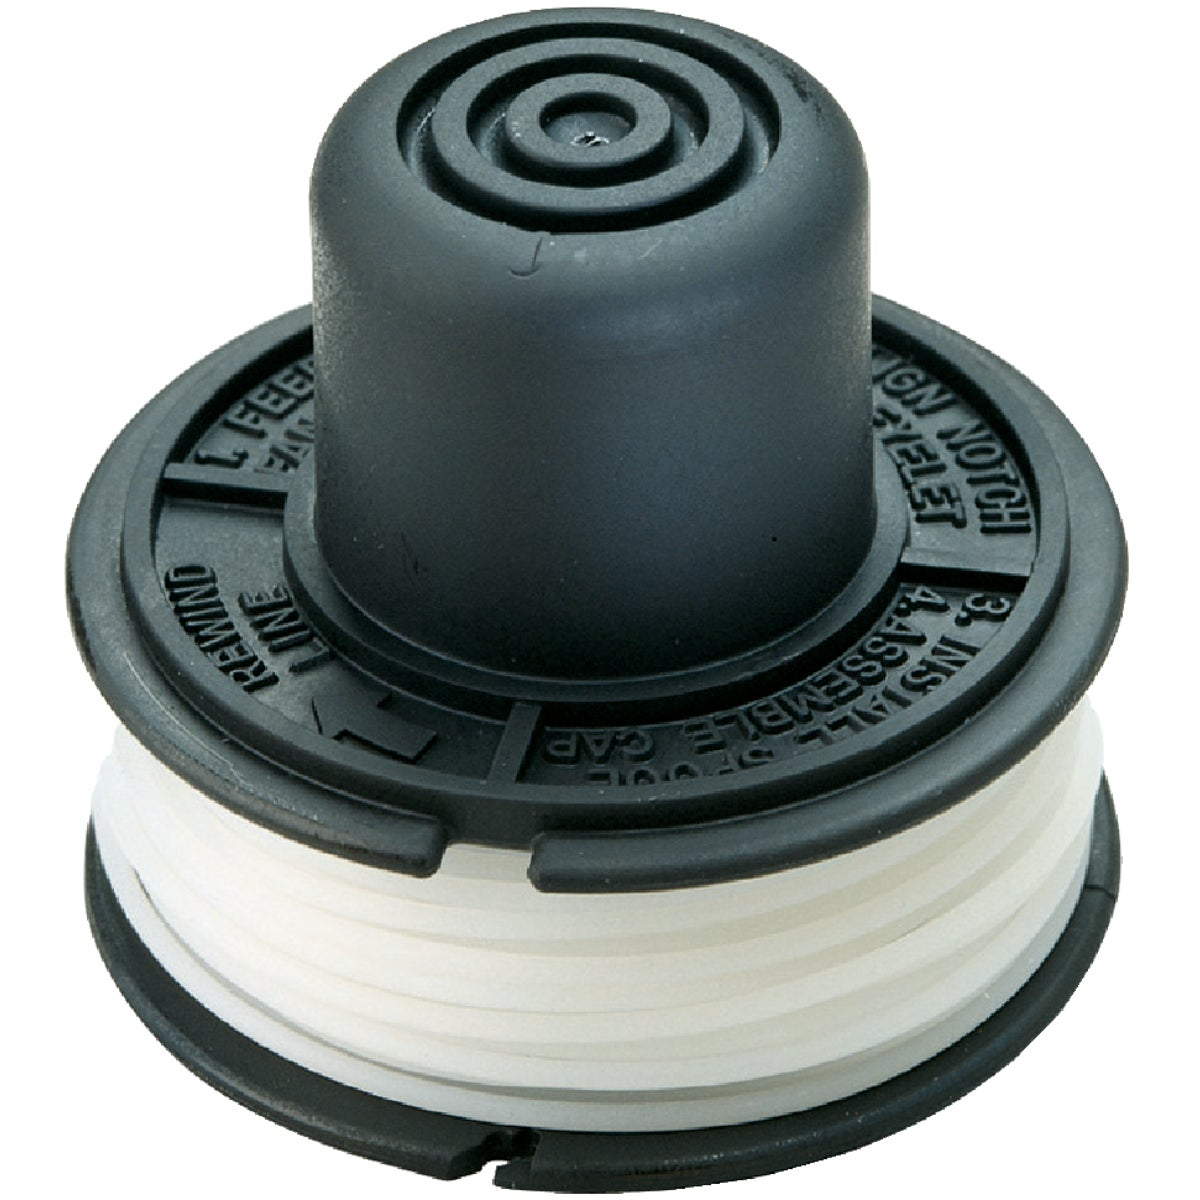 REPL TRIMMER LINE SPOOL - RS-136 by Black & Decker